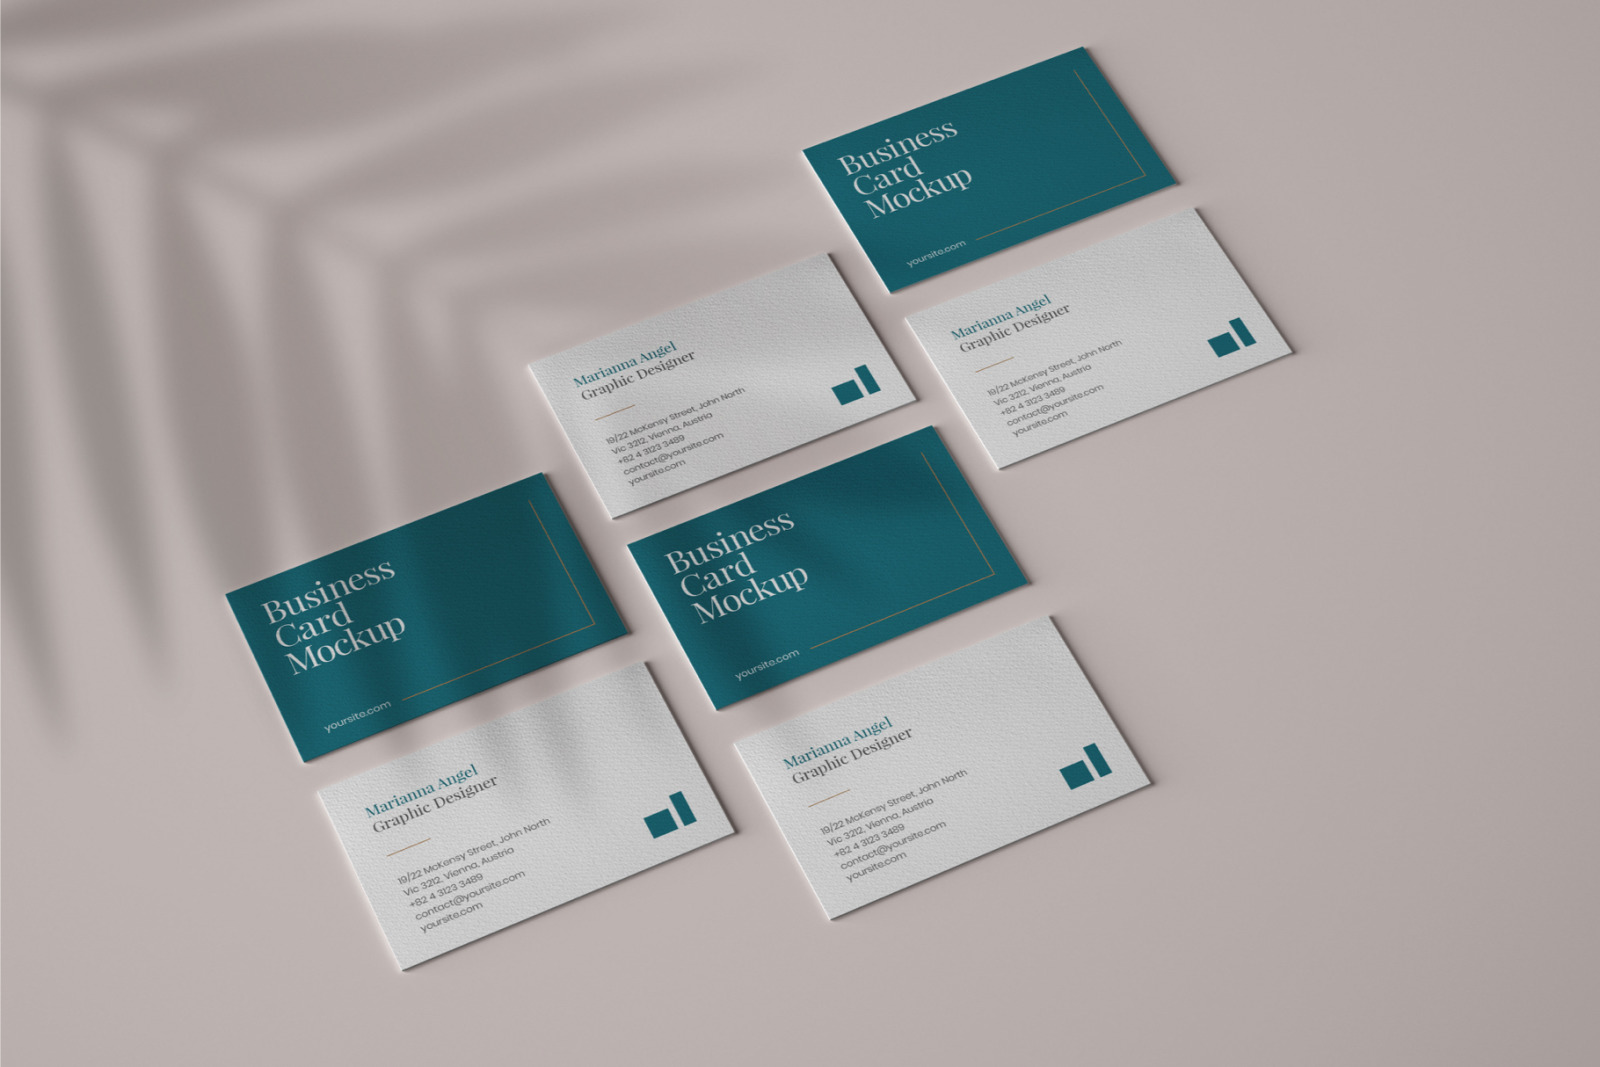 Business Card Mockup Set With Overlay Shadow